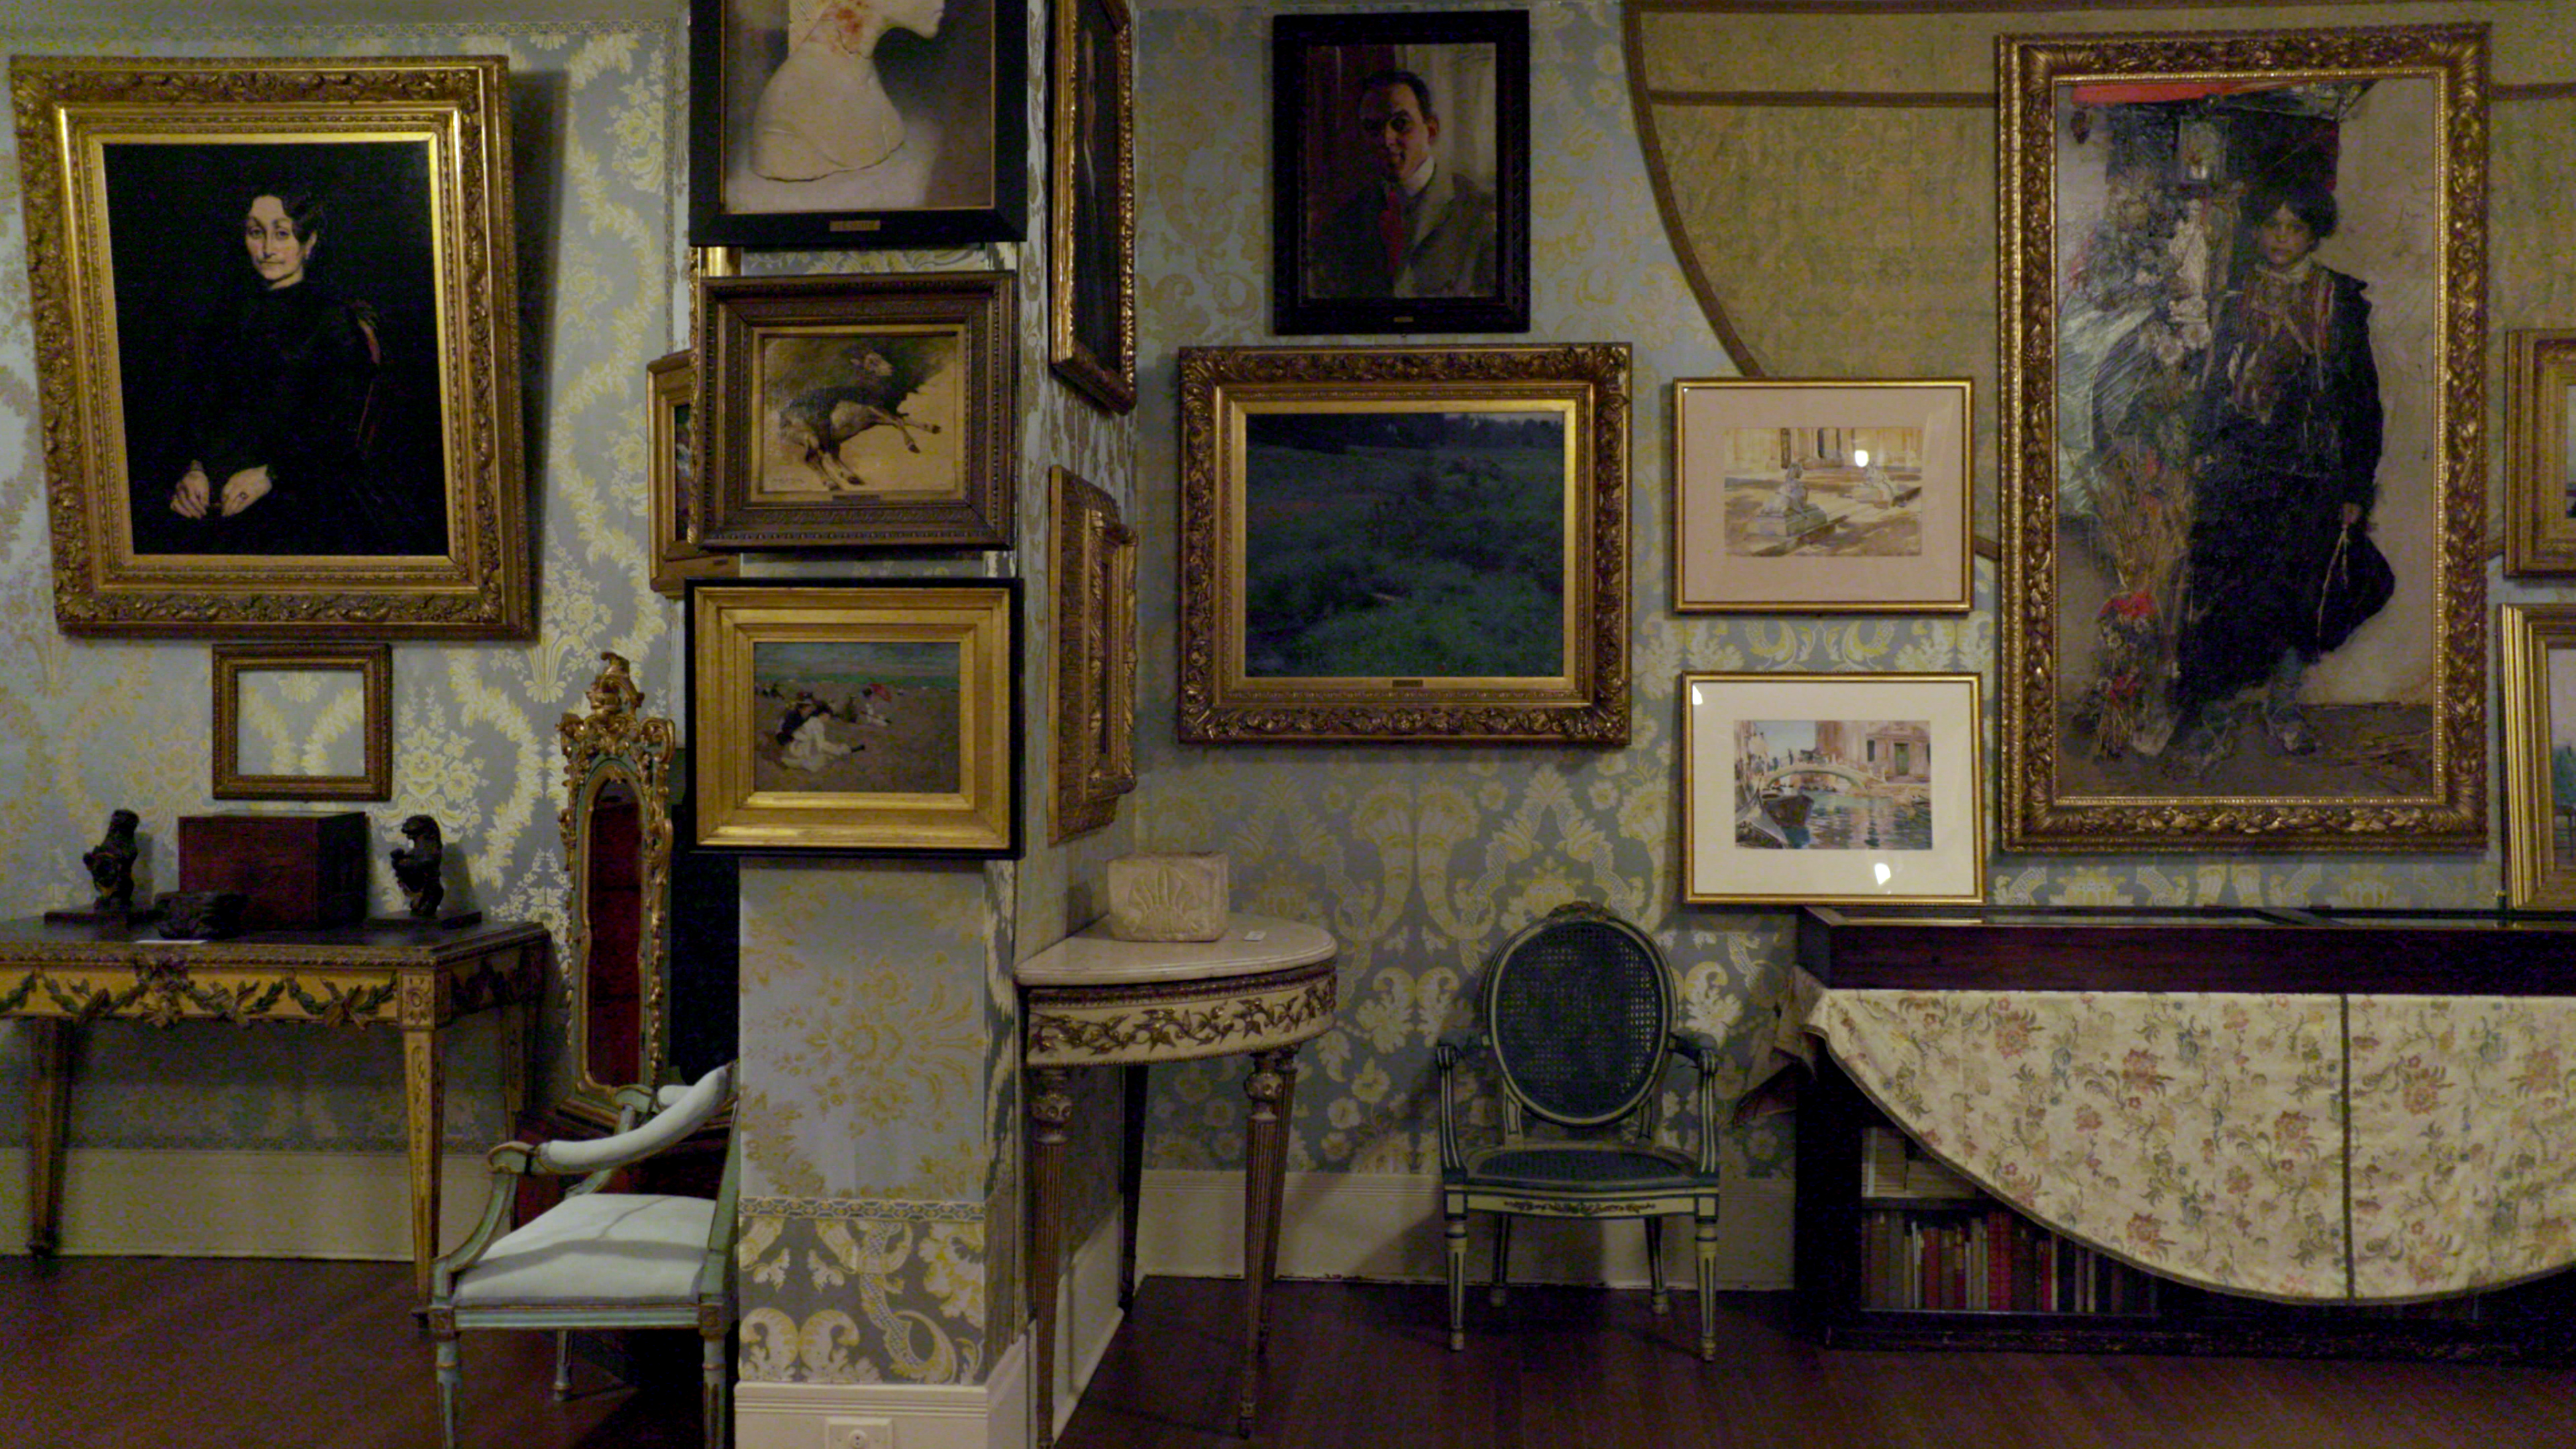 Paintings on the wall of a museum.